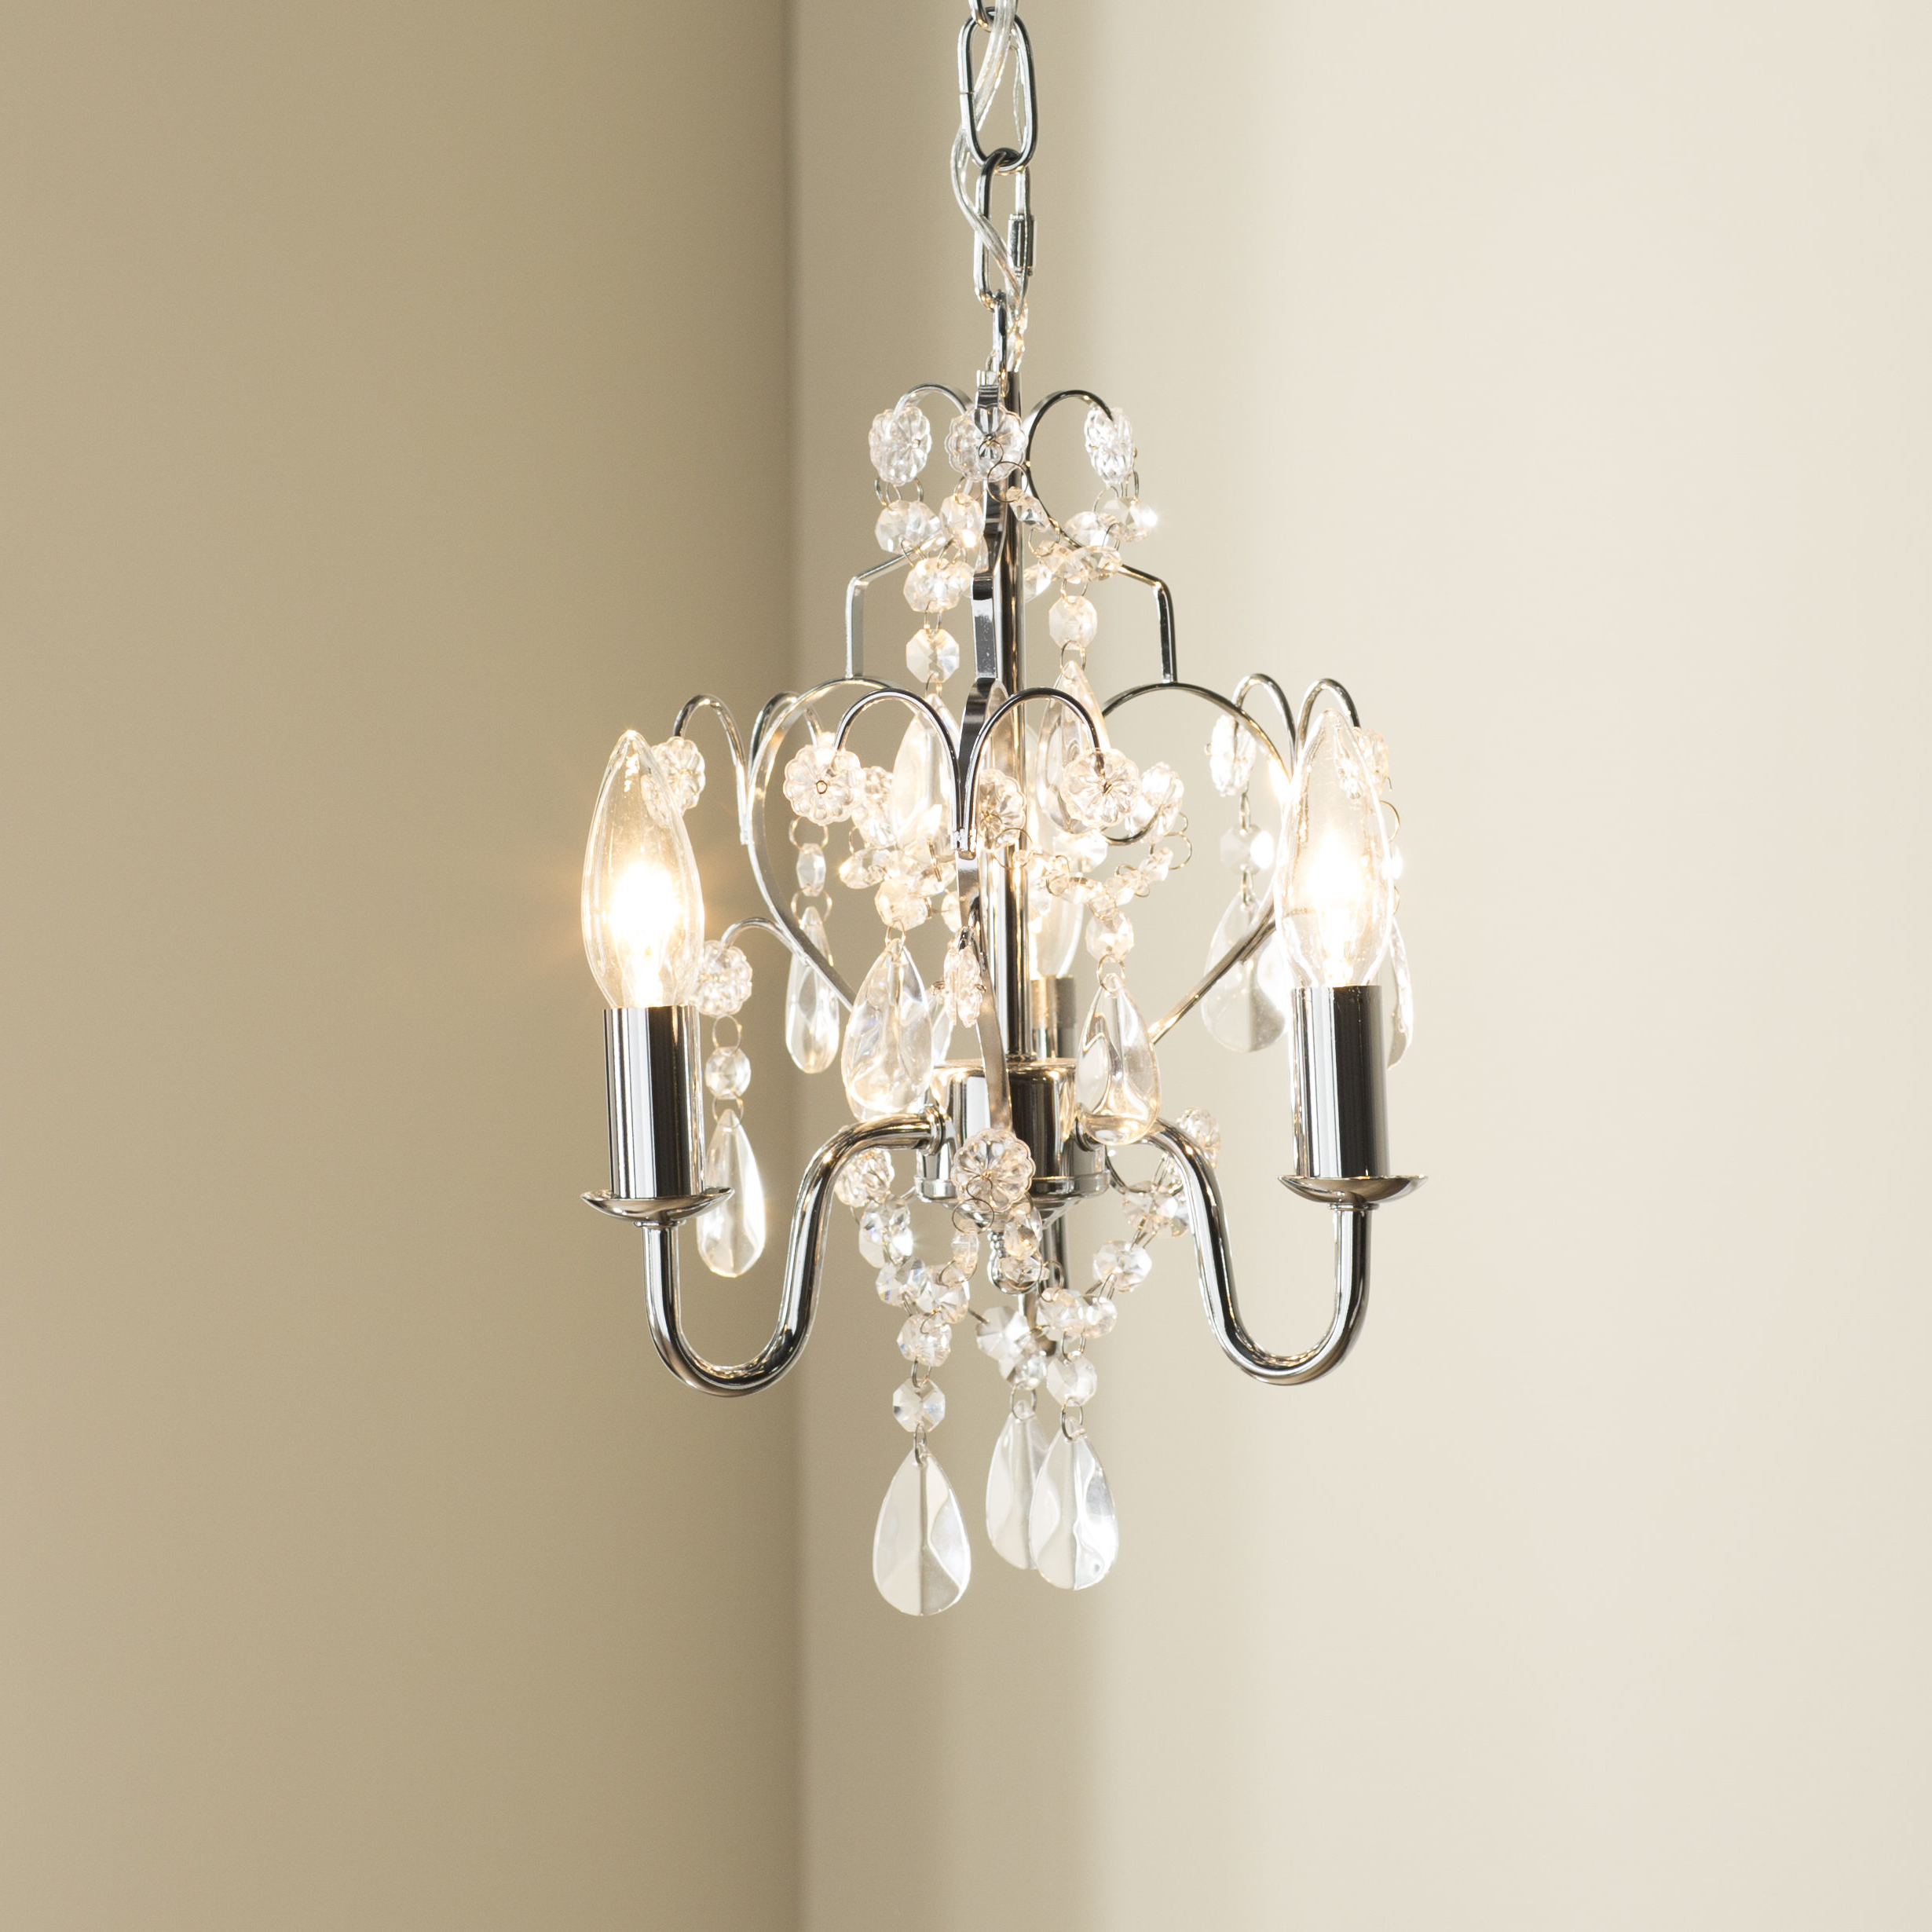 Aldora 4 Light Candle Style Chandeliers With Most Up To Date Dagnall 3 Light Candle Style Chandelier (View 19 of 25)